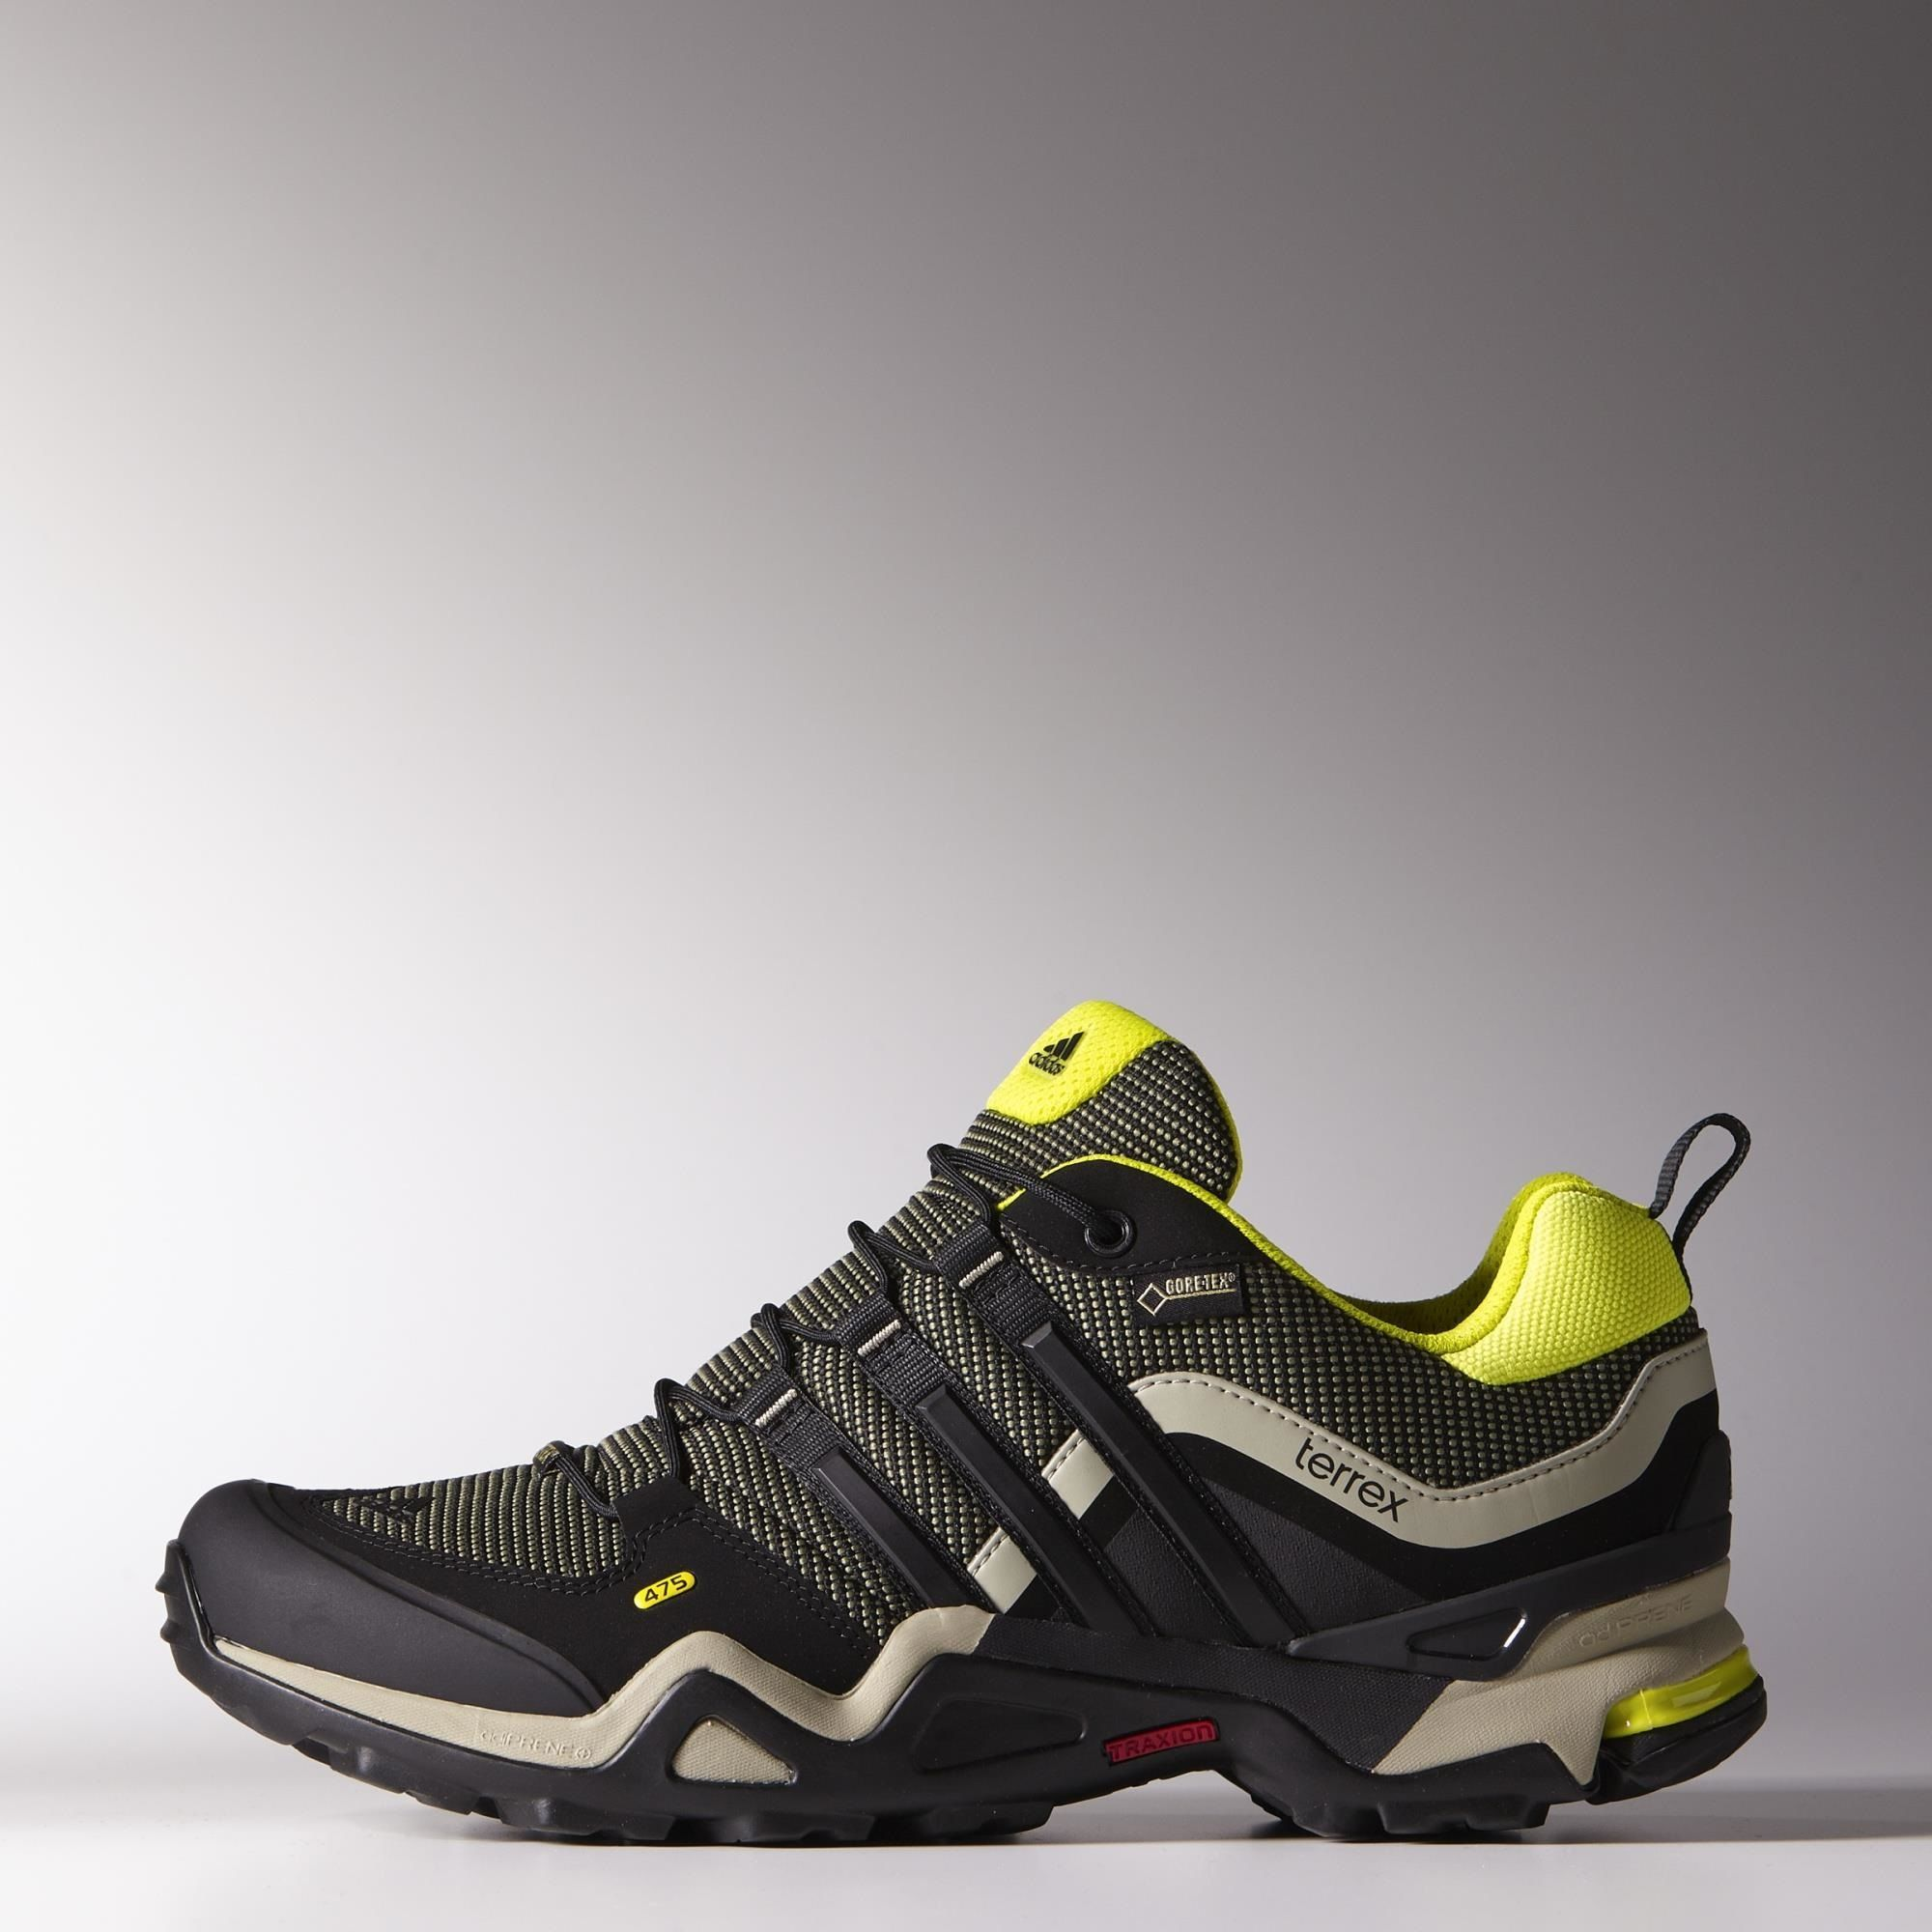 Adidas Terrex Fast X Gtx Shoes Green Adidas Us Boots Shoes Adidas Online